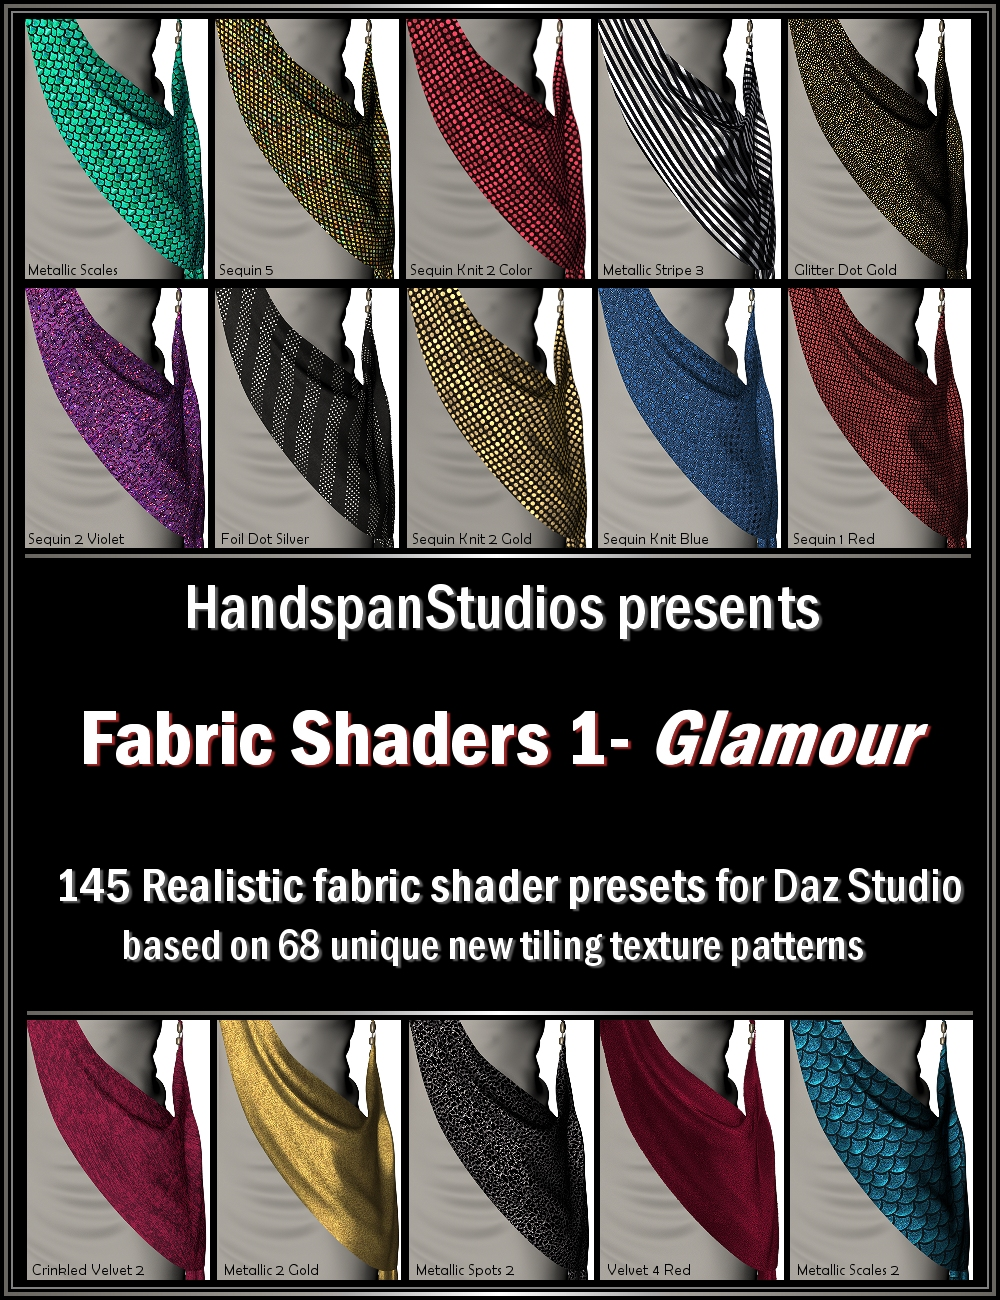 HSS Fabric Shaders 1-Glamour by: Handspan Studios, 3D Models by Daz 3D